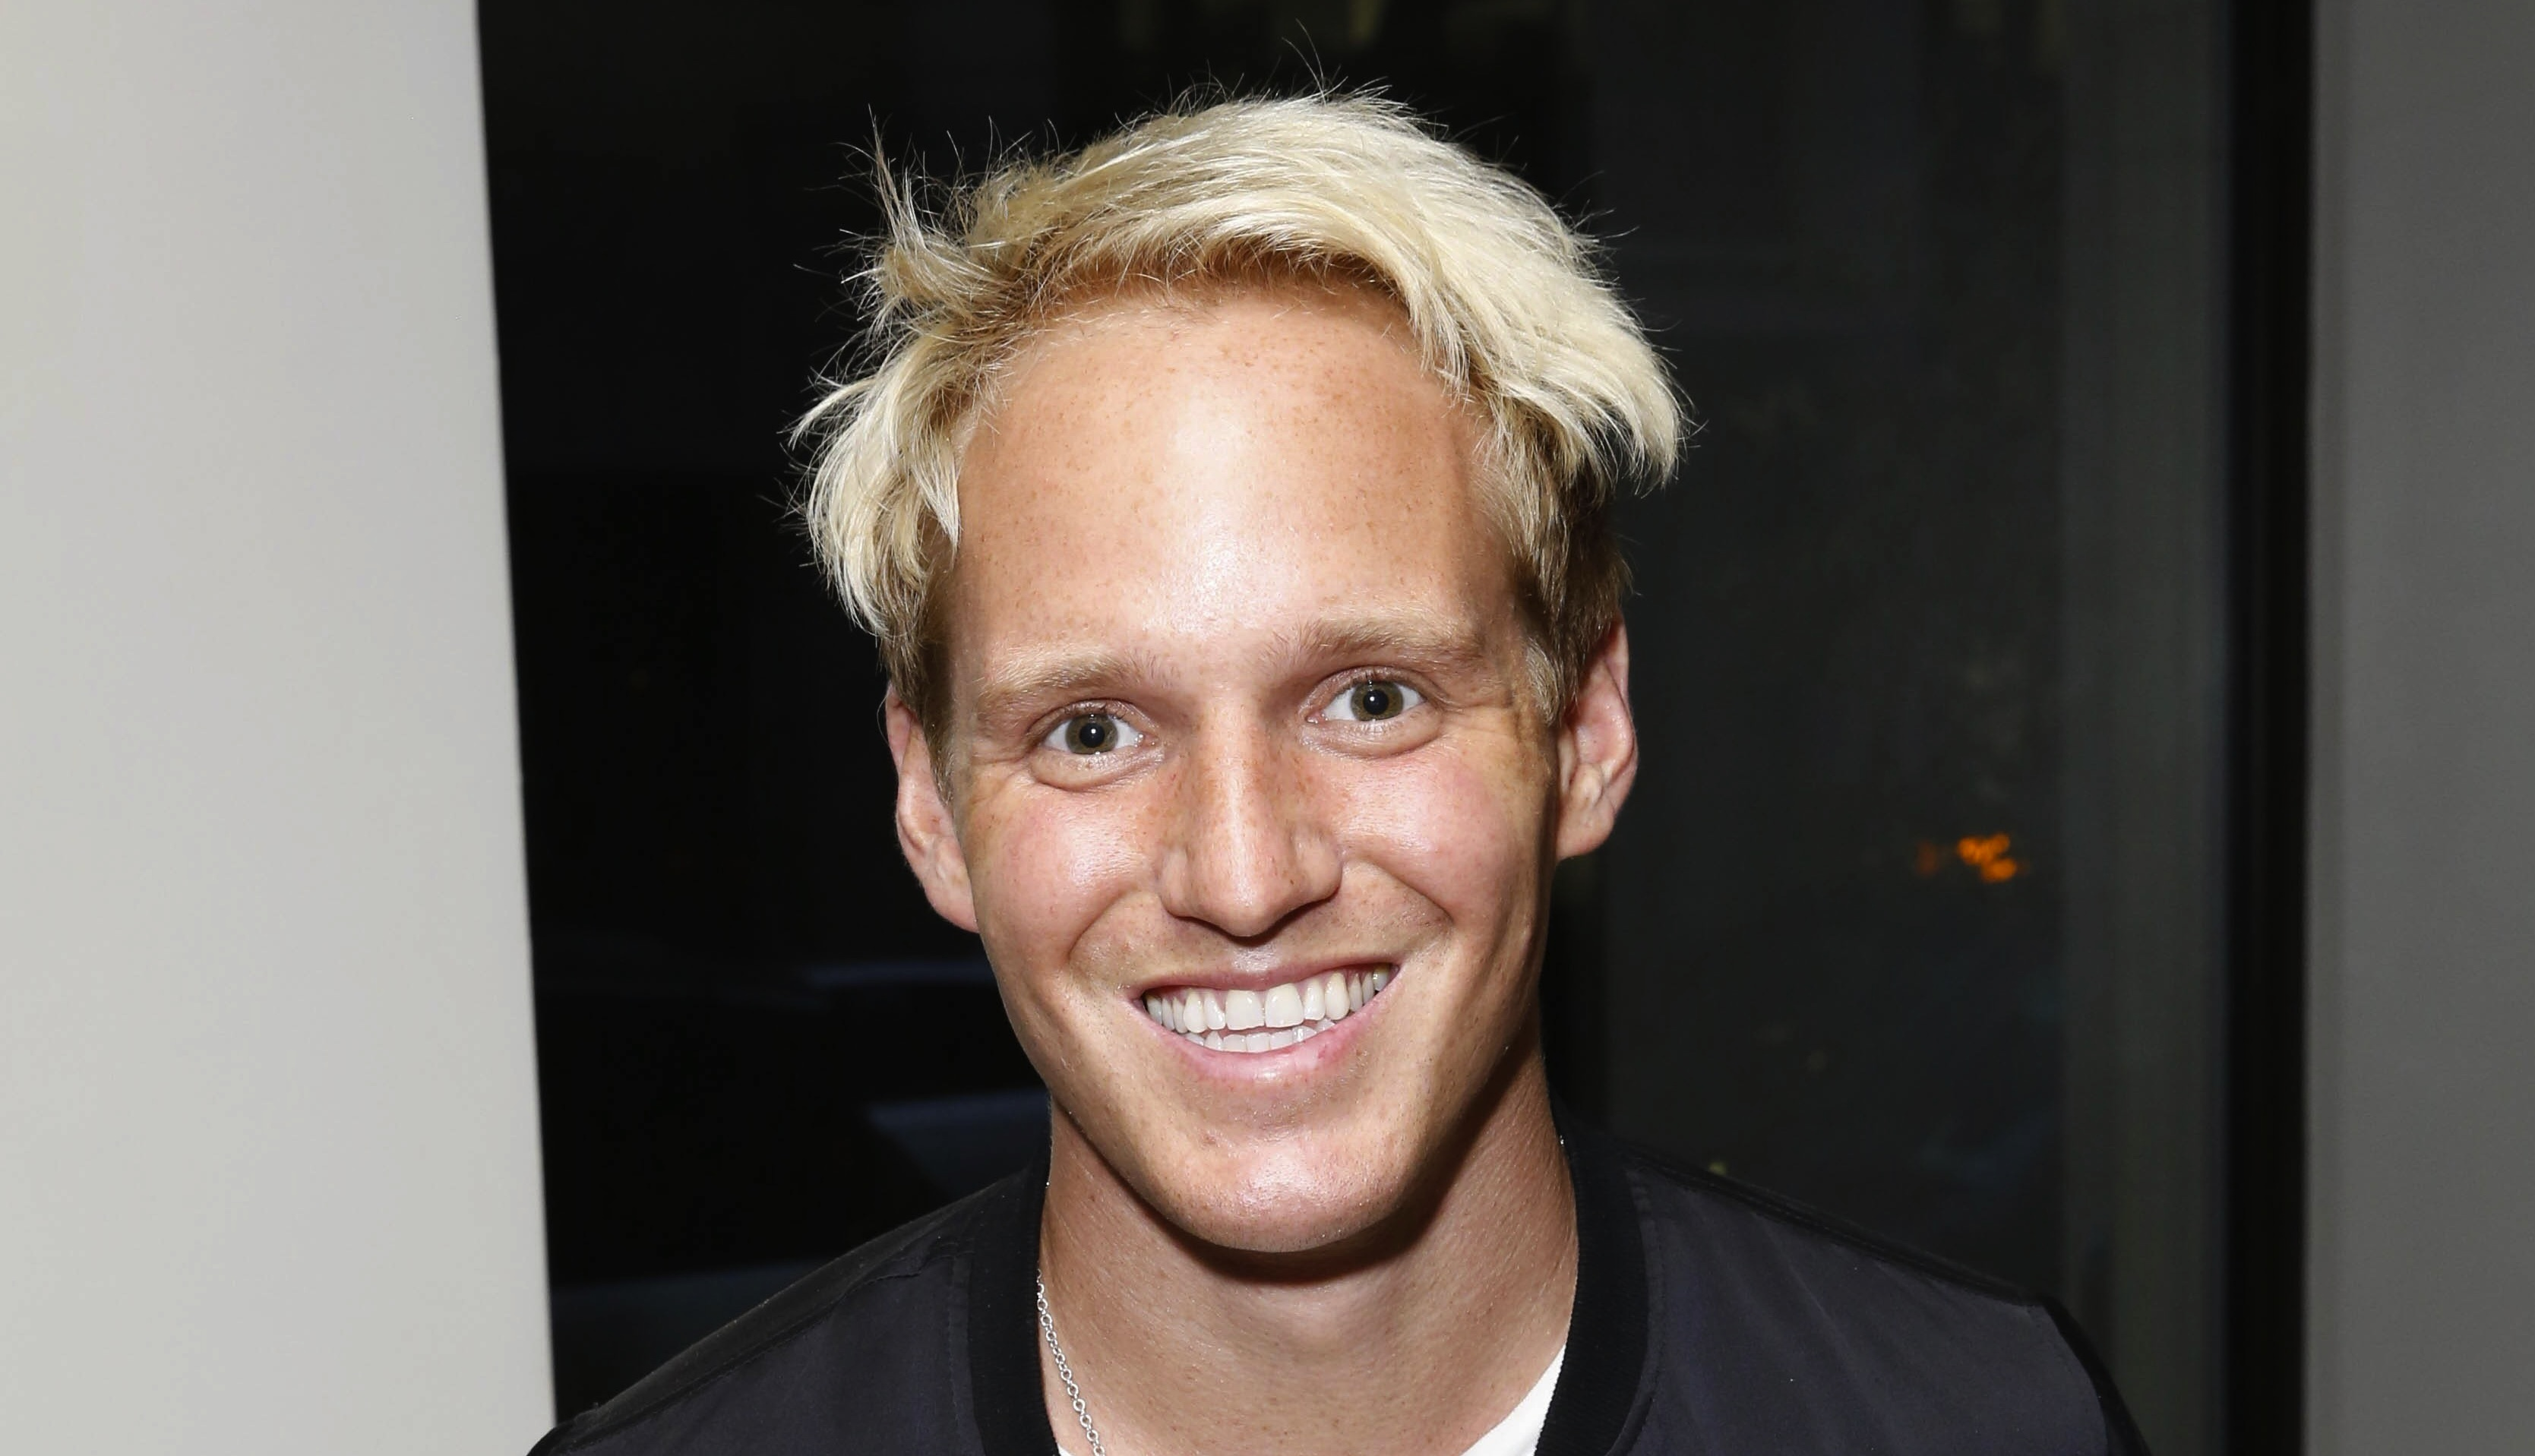 Jamie Laing's Strictly hopes 'at risk' as doctors reportedly diagnose painful foot condition